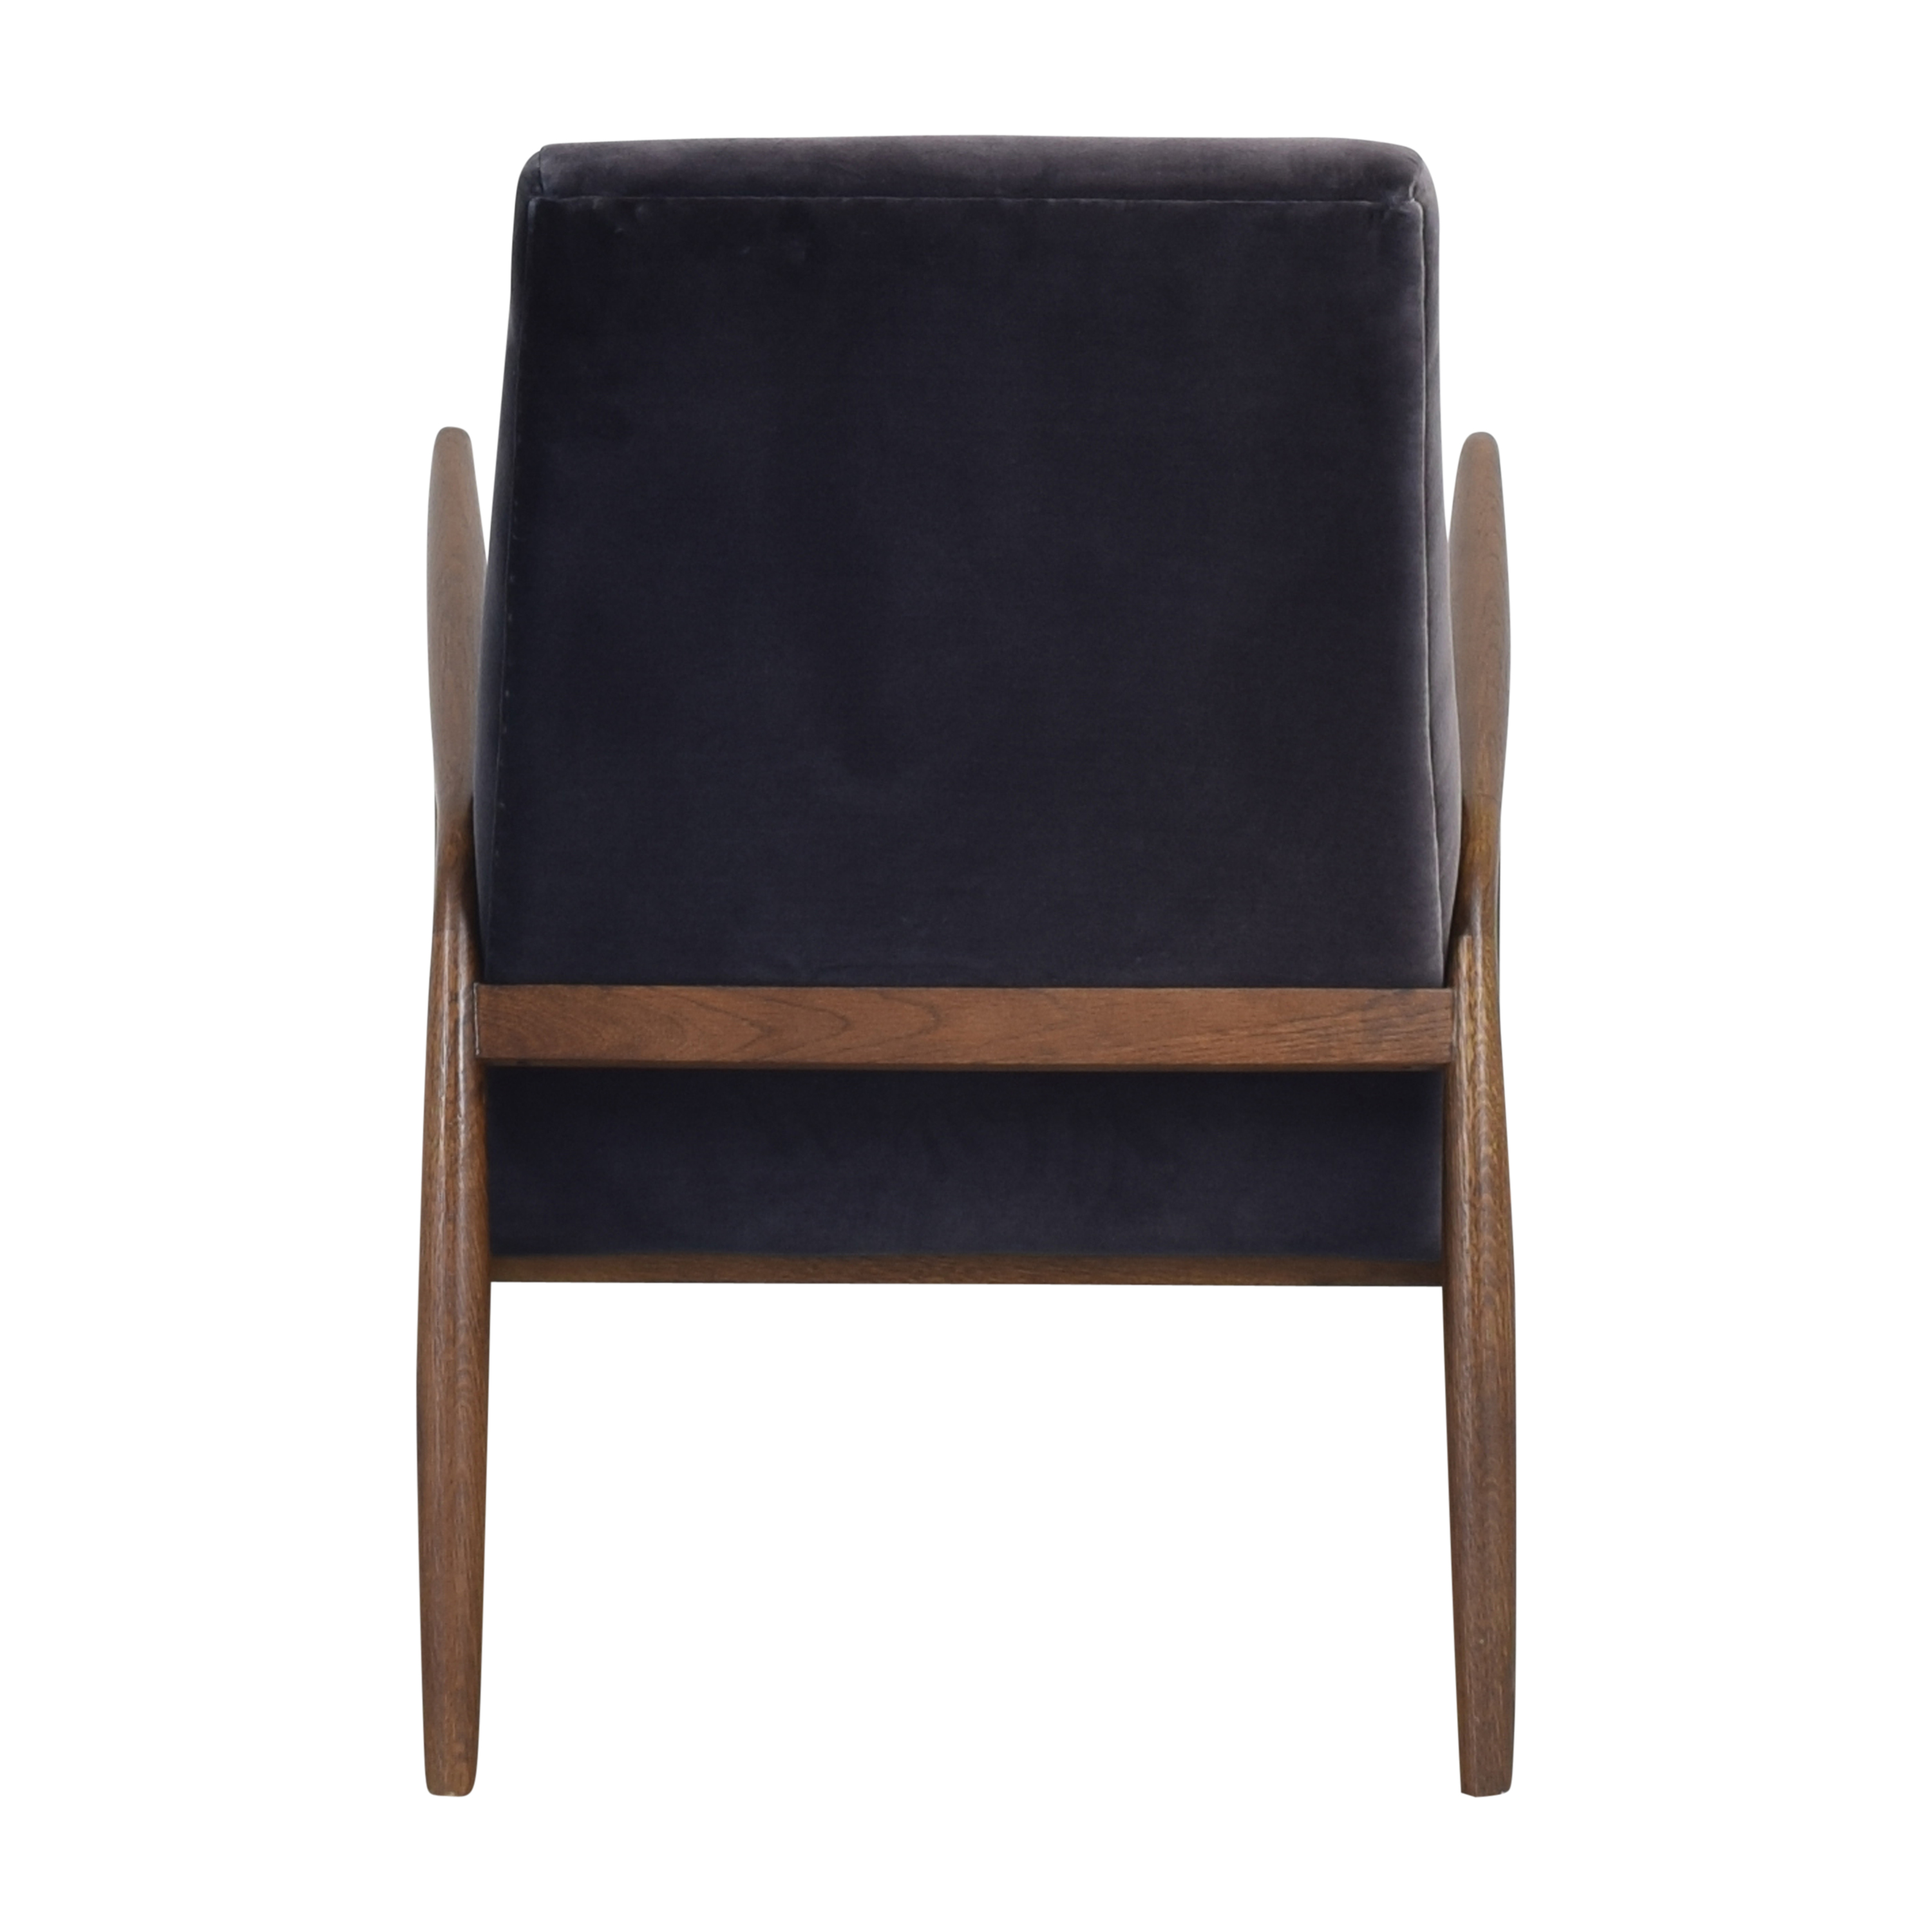 Safavieh Willow Channel Tufted Arm Chair / Chairs